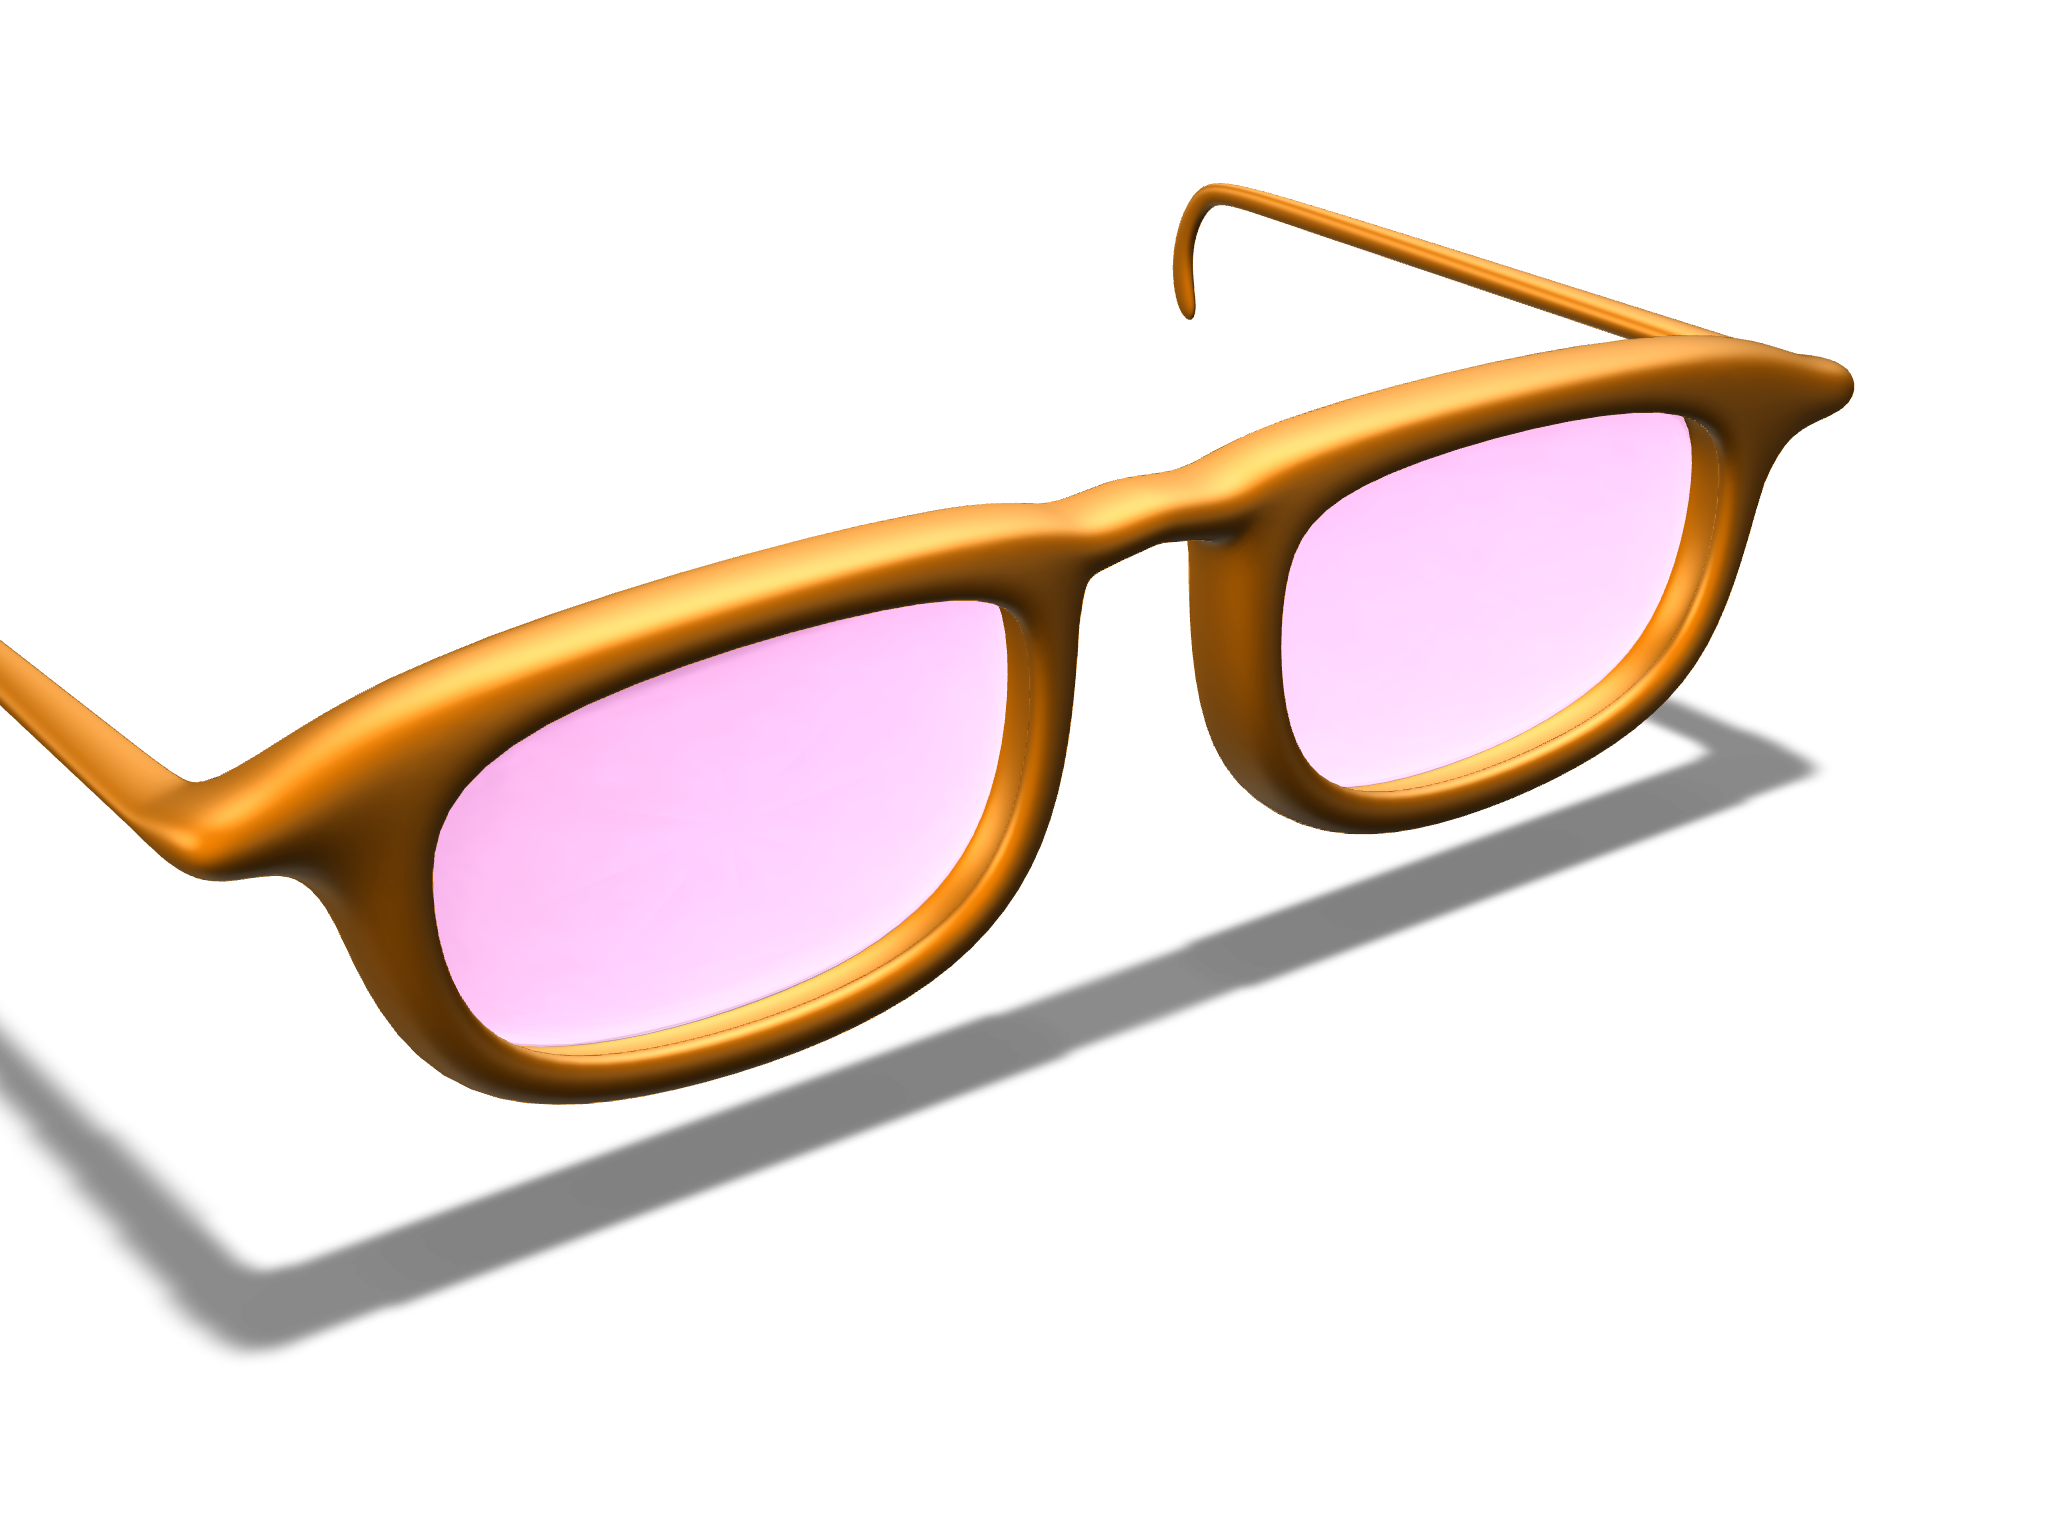 glasses - 3D design by Jacob Tran on Feb 15, 2018